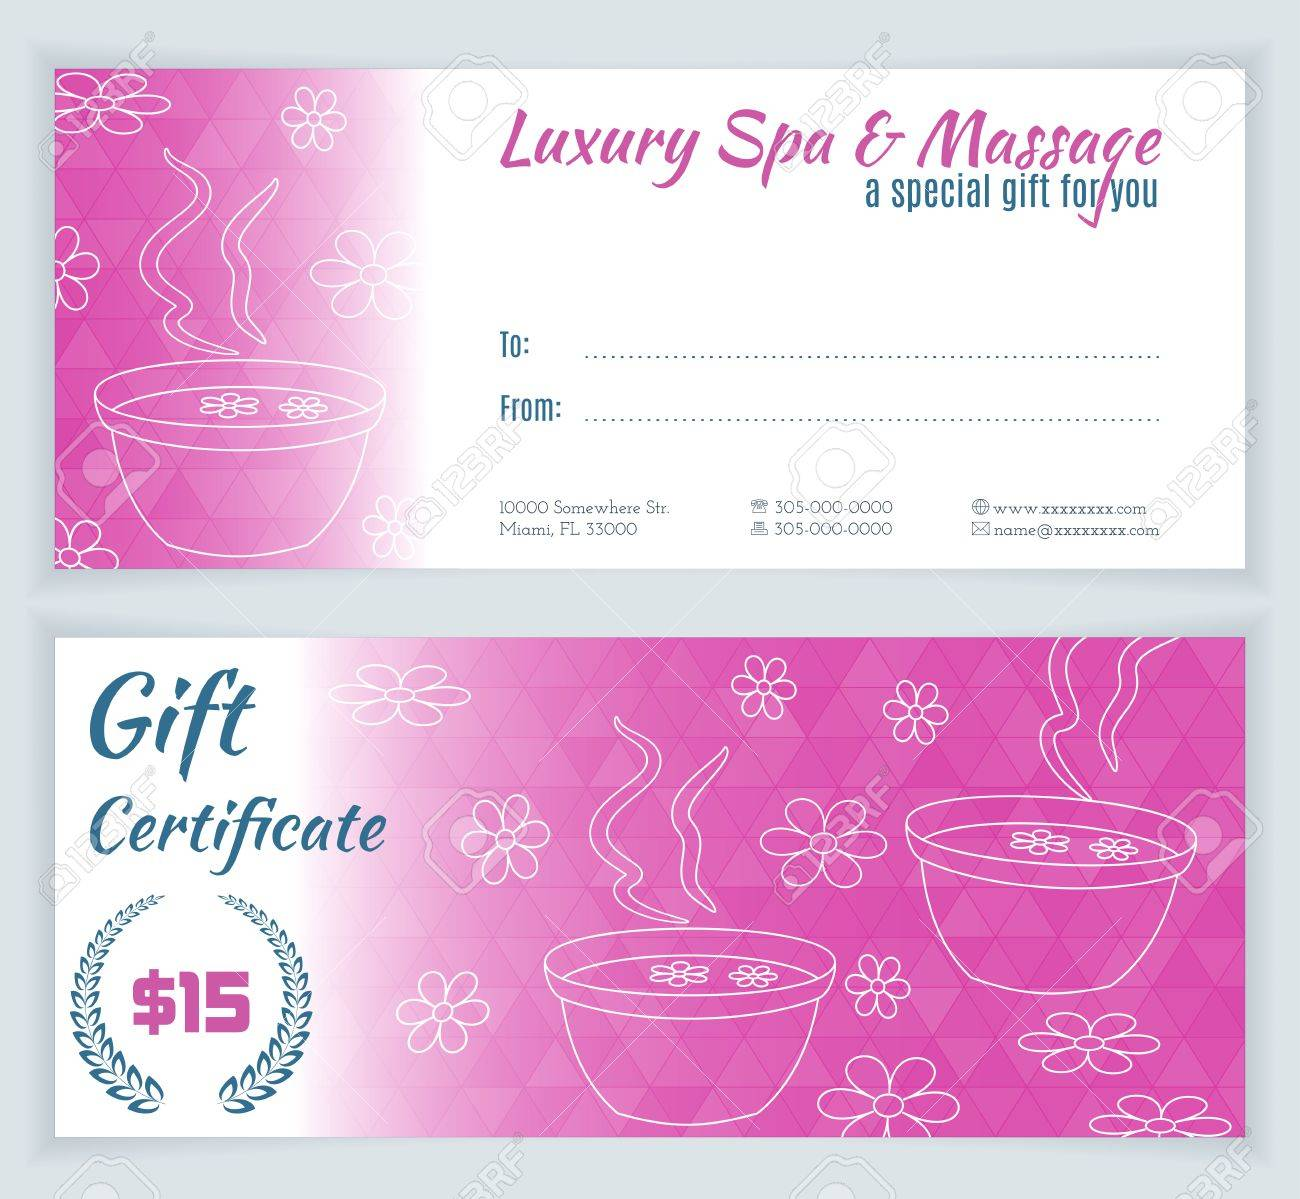 Spa massage gift certificate template with hand drawn foot bath spa massage gift certificate template with hand drawn foot bath with flowers stock vector yadclub Images